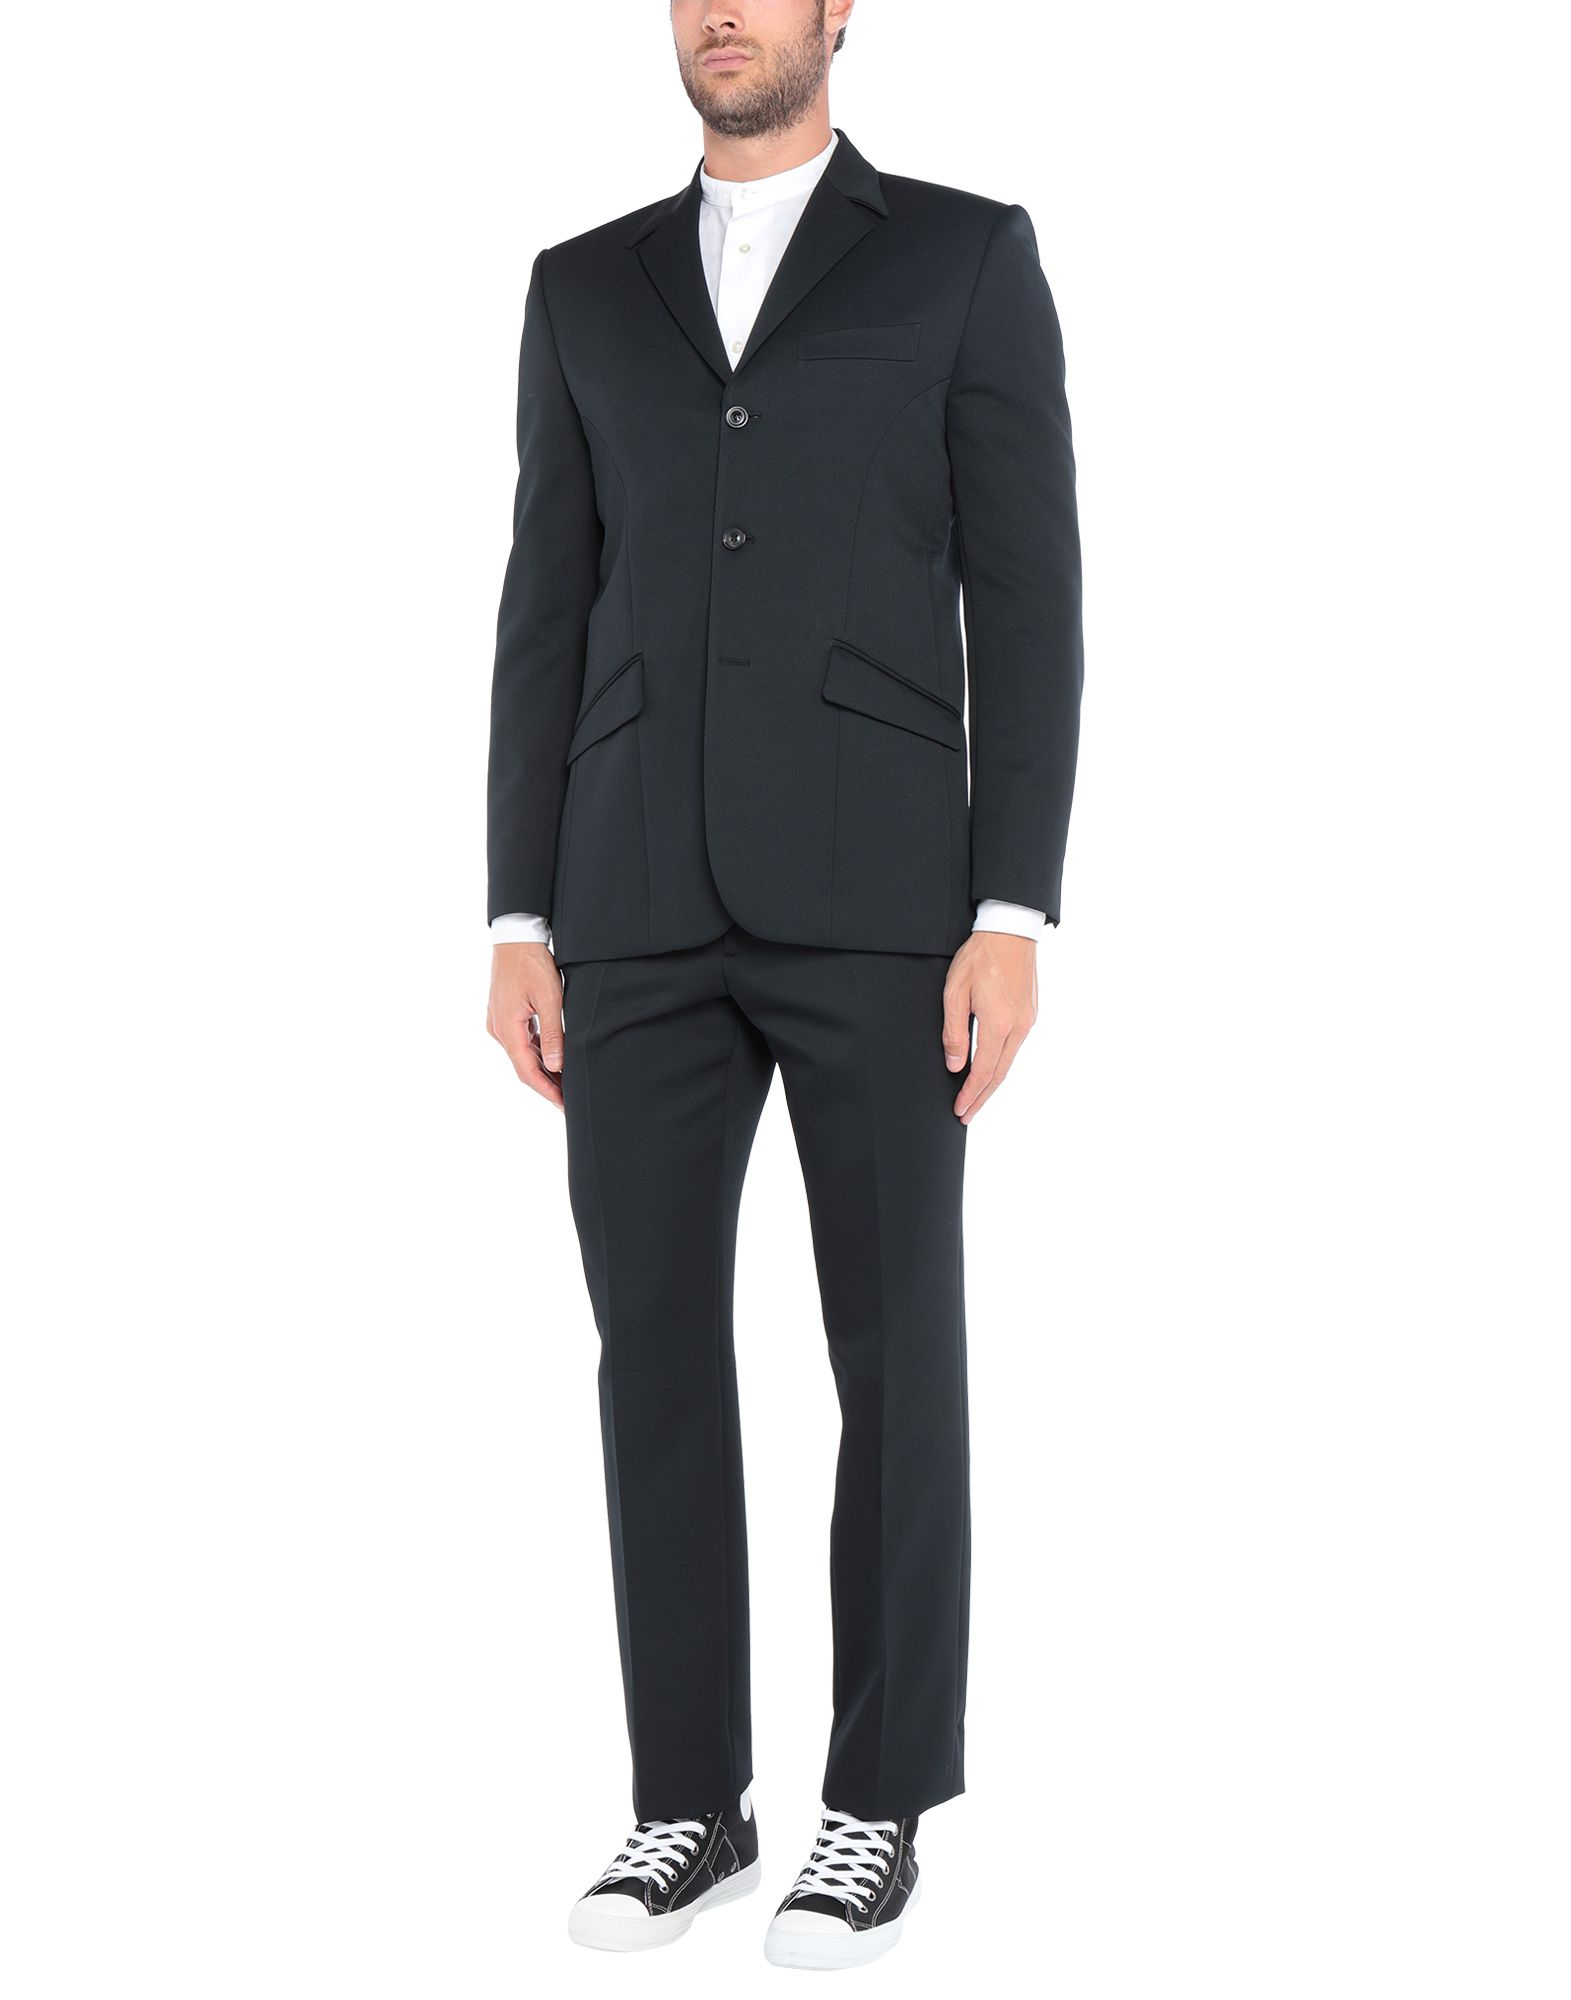 MAISON MARGIELA Suits. plain weave, no appliqués, basic solid color, multipockets, pocket with flap, single chest pocket, two inside pockets, 3 buttons, lapel collar, single-breasted, long sleeves, fully lined, mid rise, straight-leg pants, hook-and-bar, zip. 100% Polyester